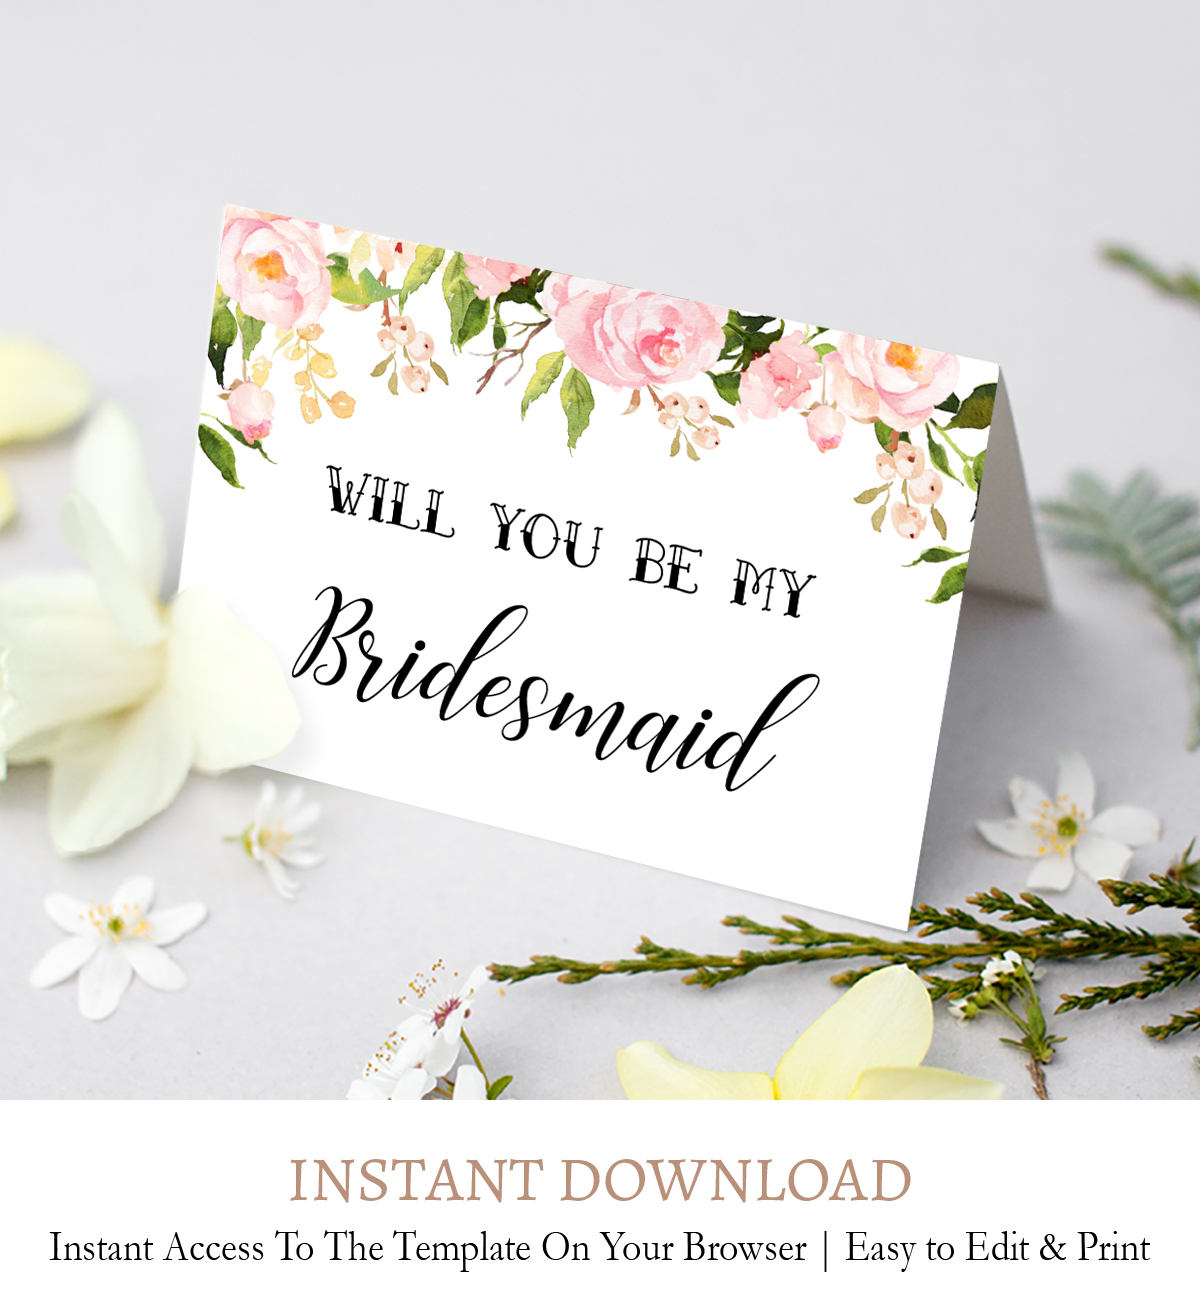 Editable Bridesmaid Proposal Card, Maid of Honor Printable Instant Download  F23 Throughout Will You Be My Bridesmaid Card Template